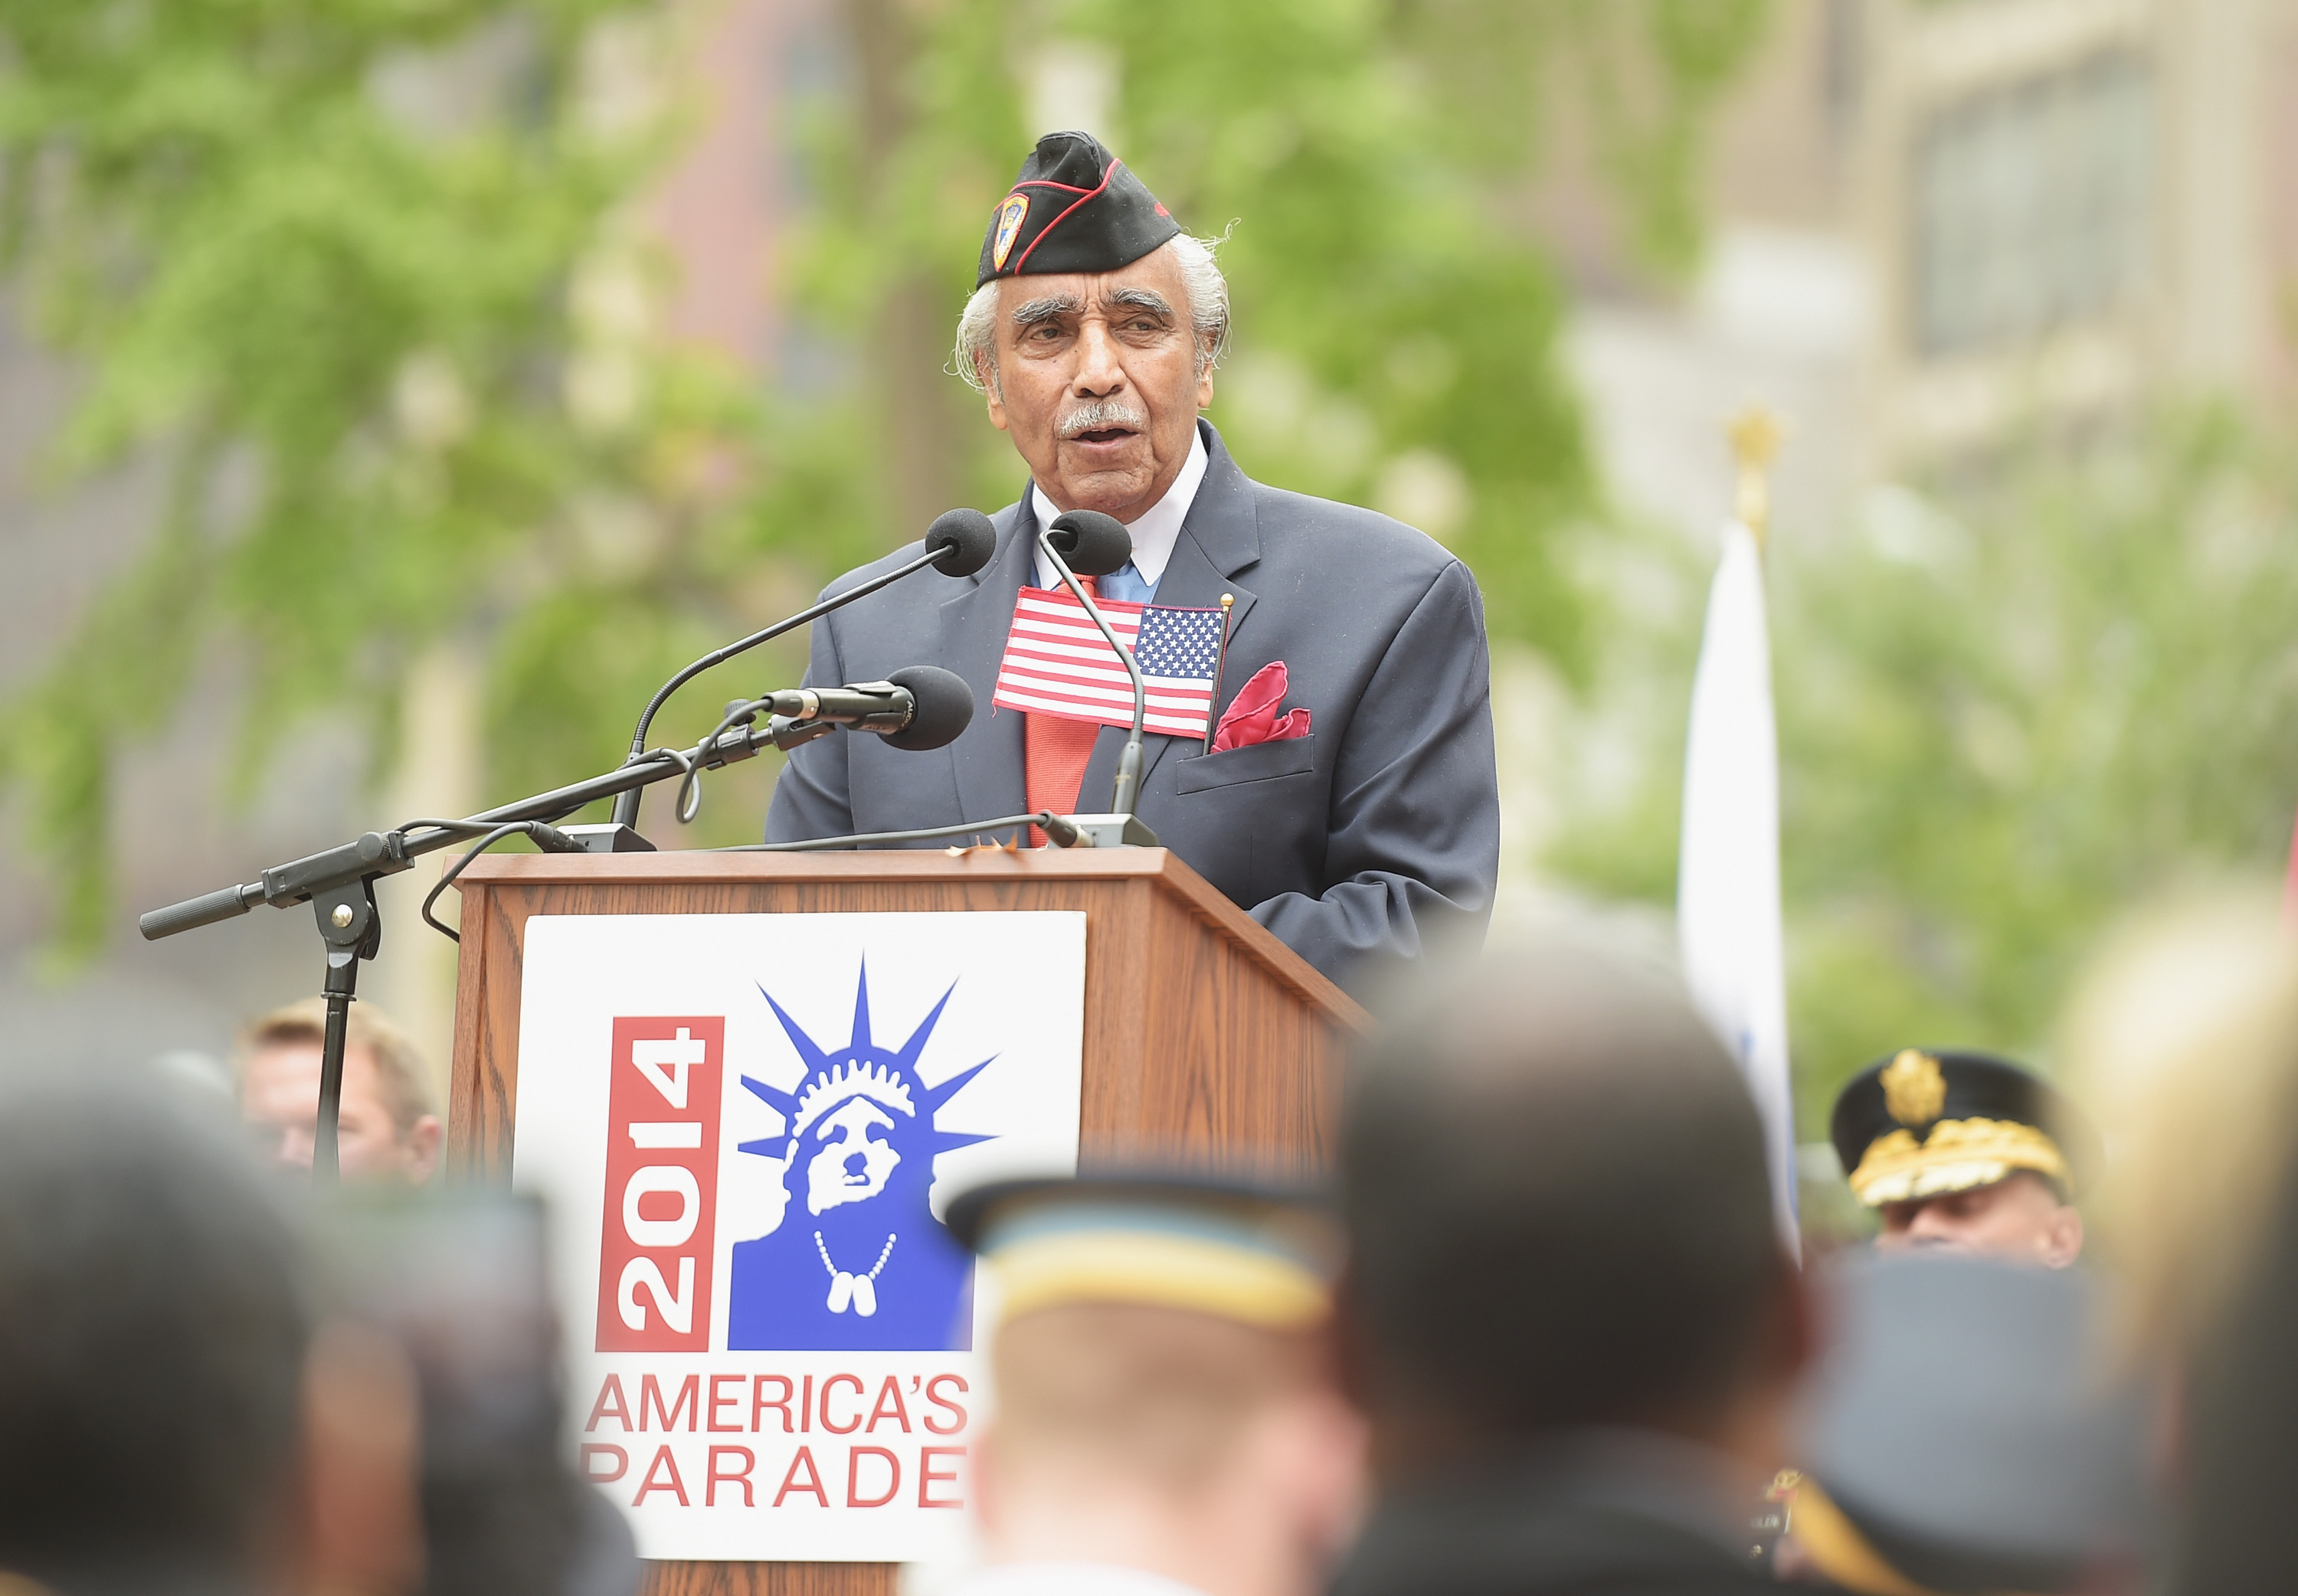 Congressman Charles Rangel at this year's Veterans Day Parade in Manhattan. (Photo: Michael Loccisano/Getty Images)